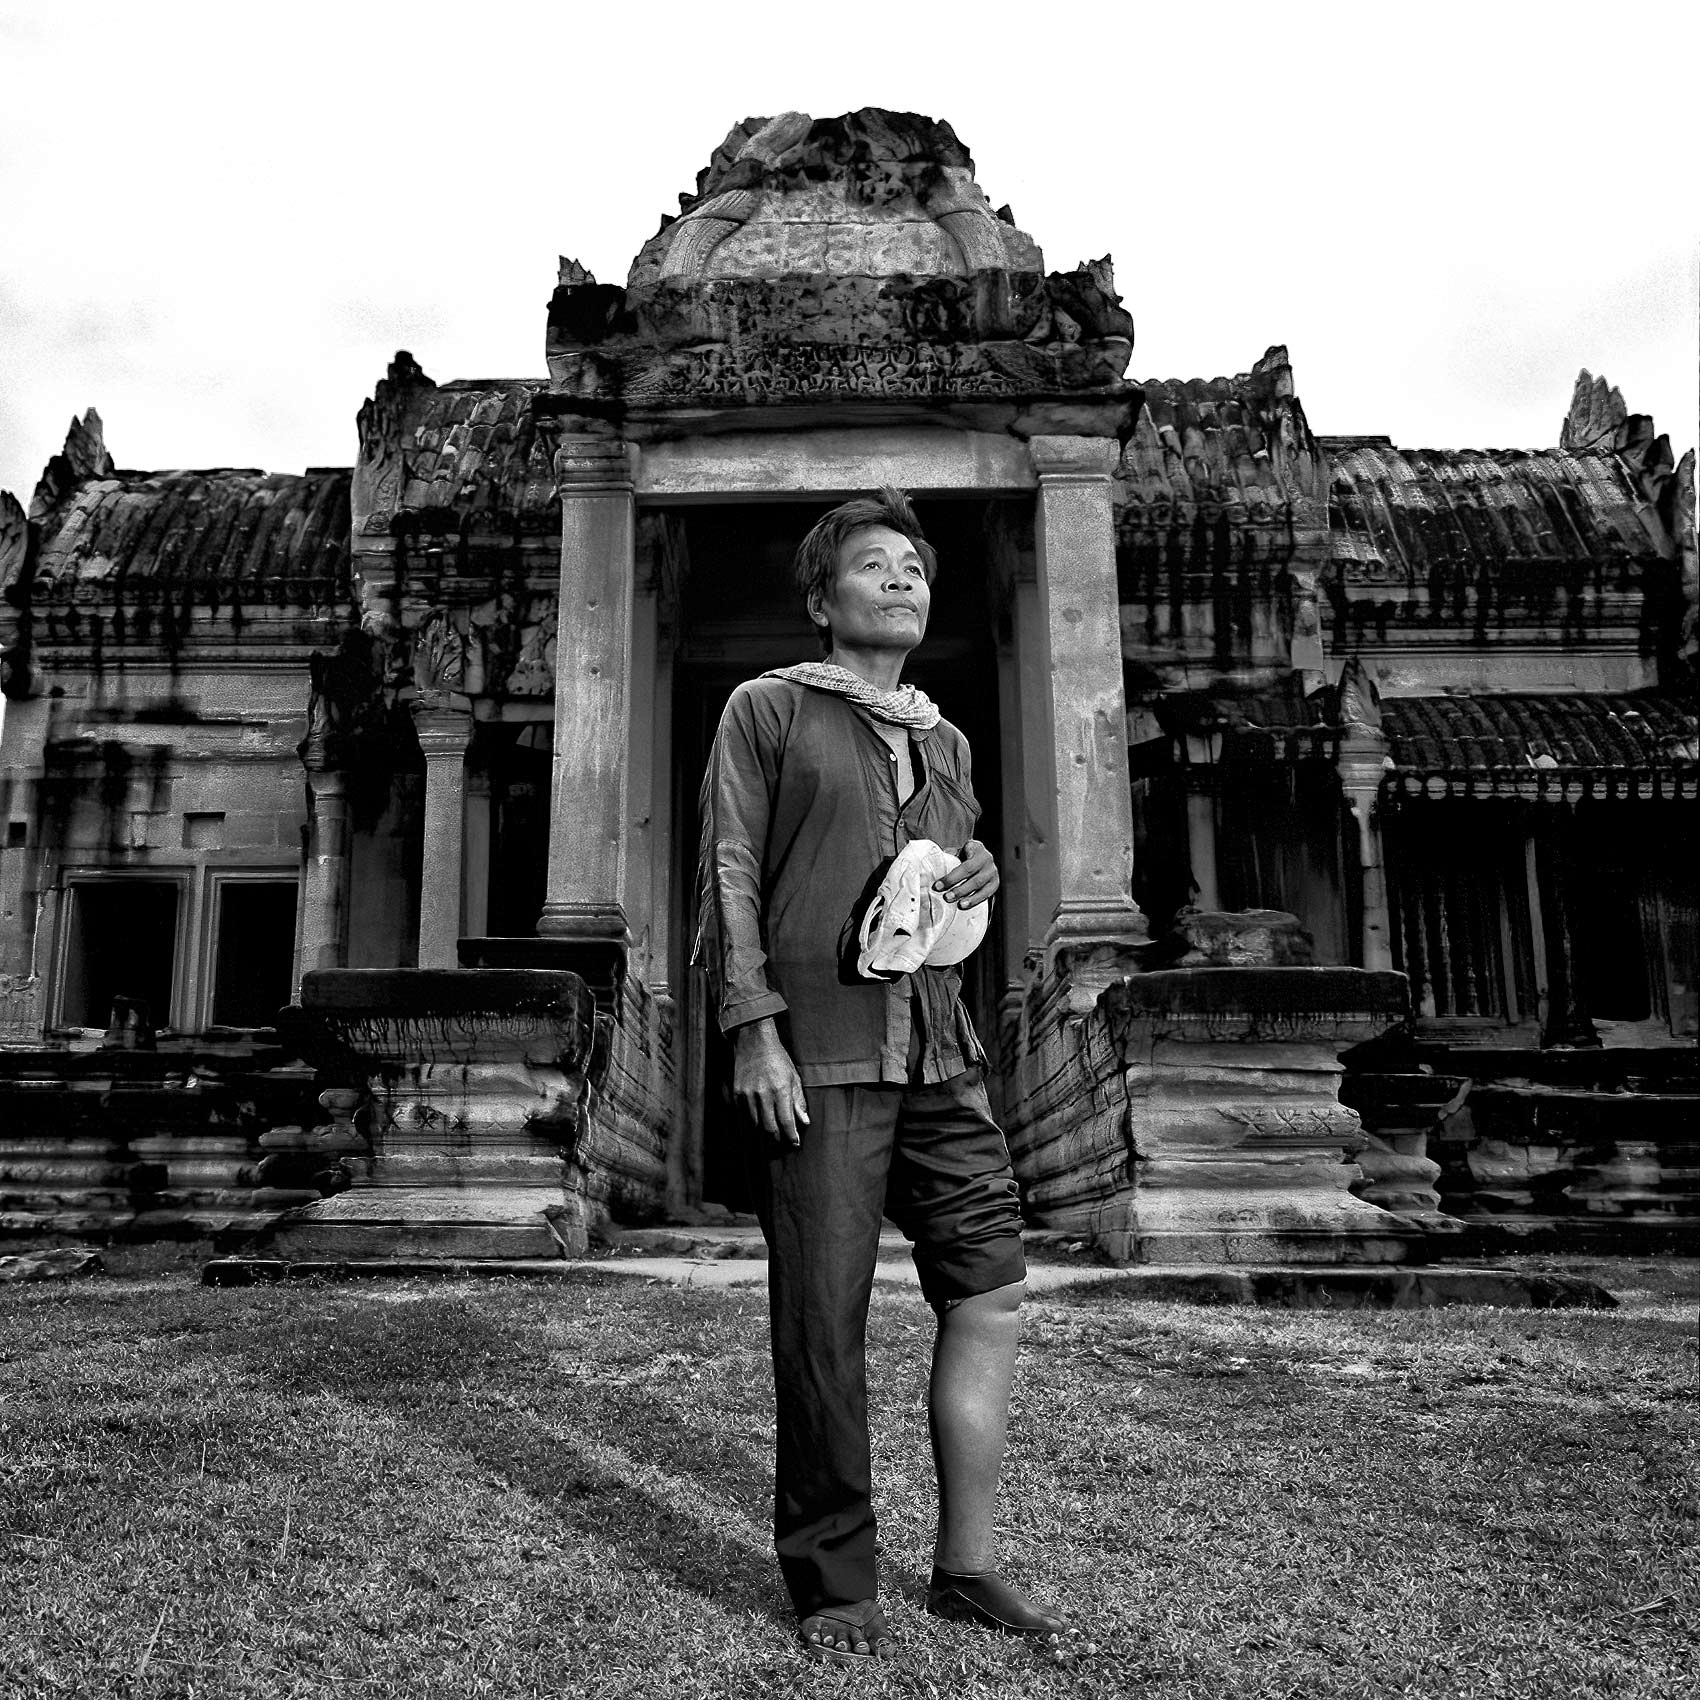 a-cambodian-man-who-was-a-victim-of-a-landmine-poses-for-a-photo-at-angkor-wat